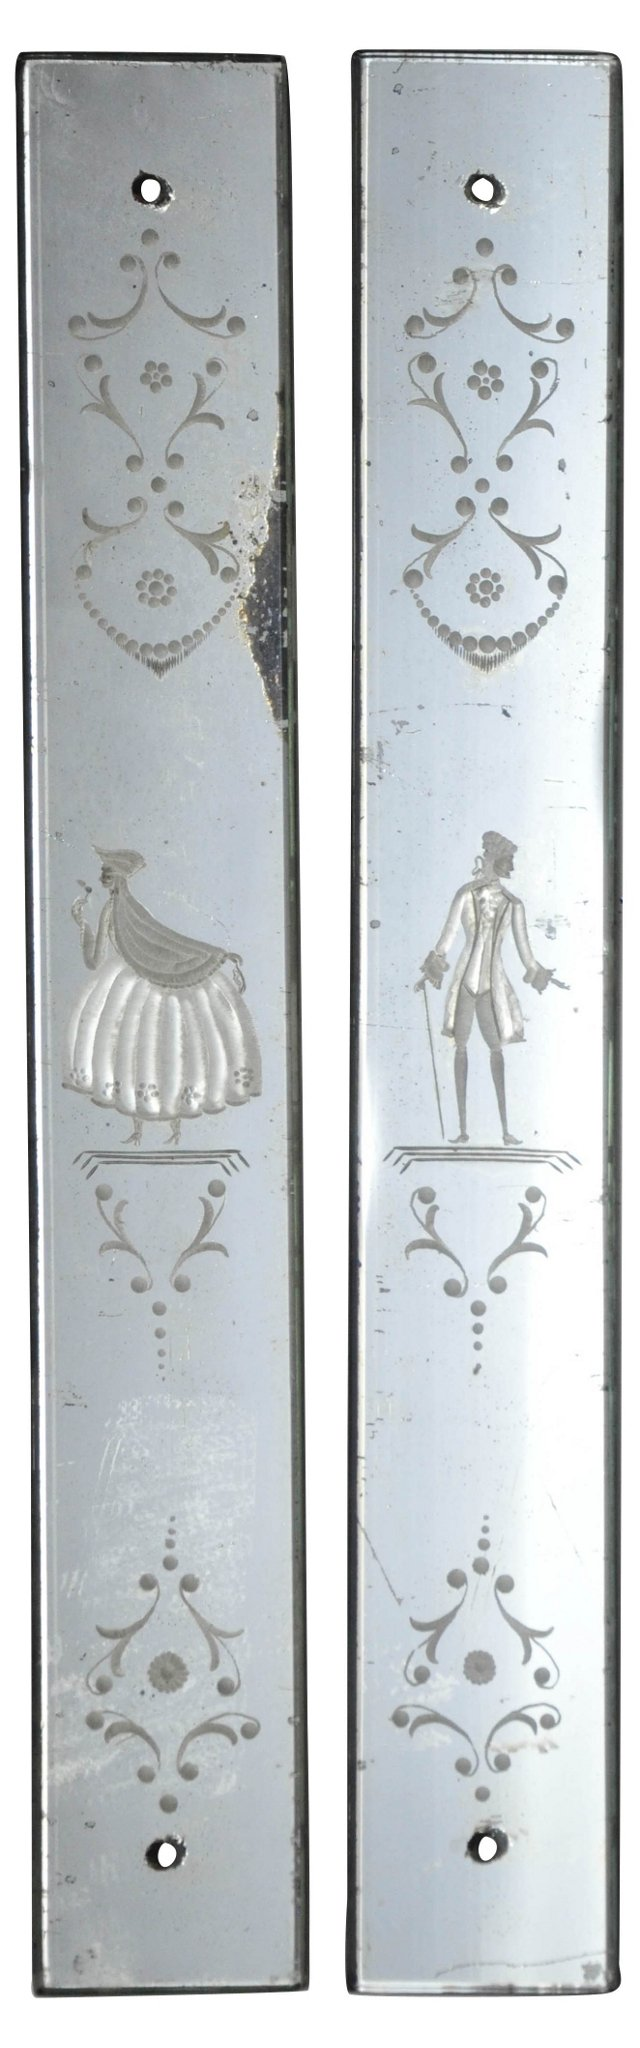 French Etched Glass Plates, Pair